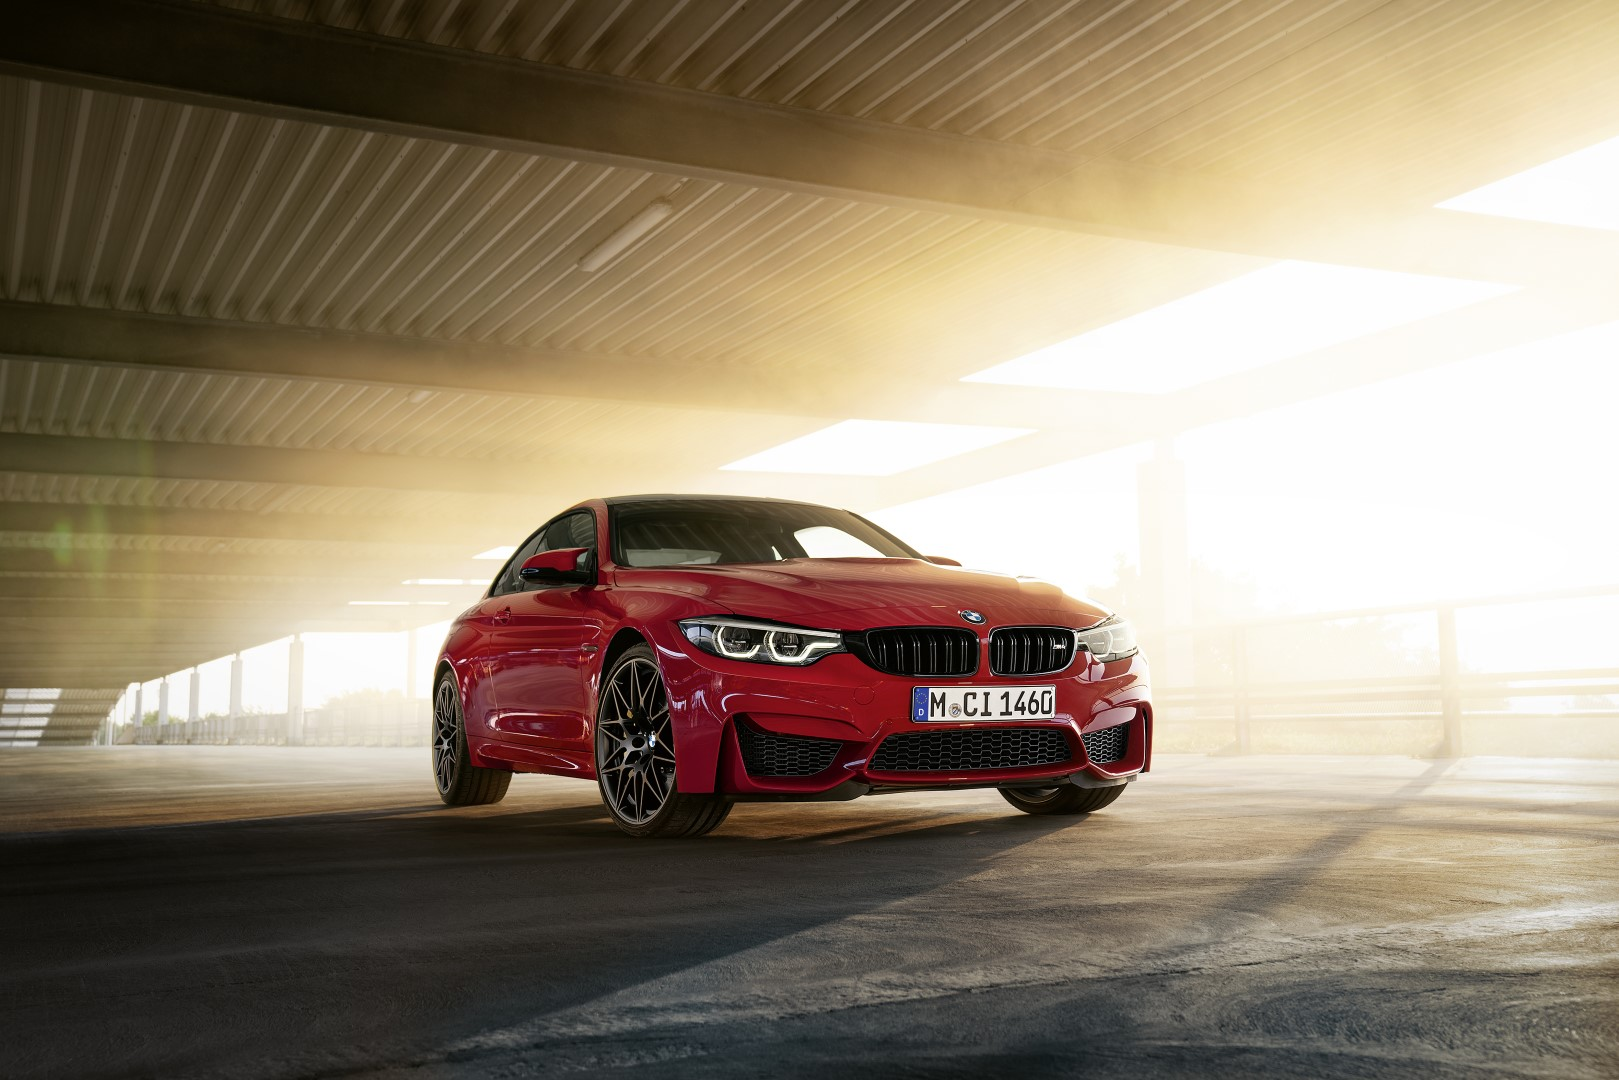 BMW M4 EDITION ///M HERITAGE